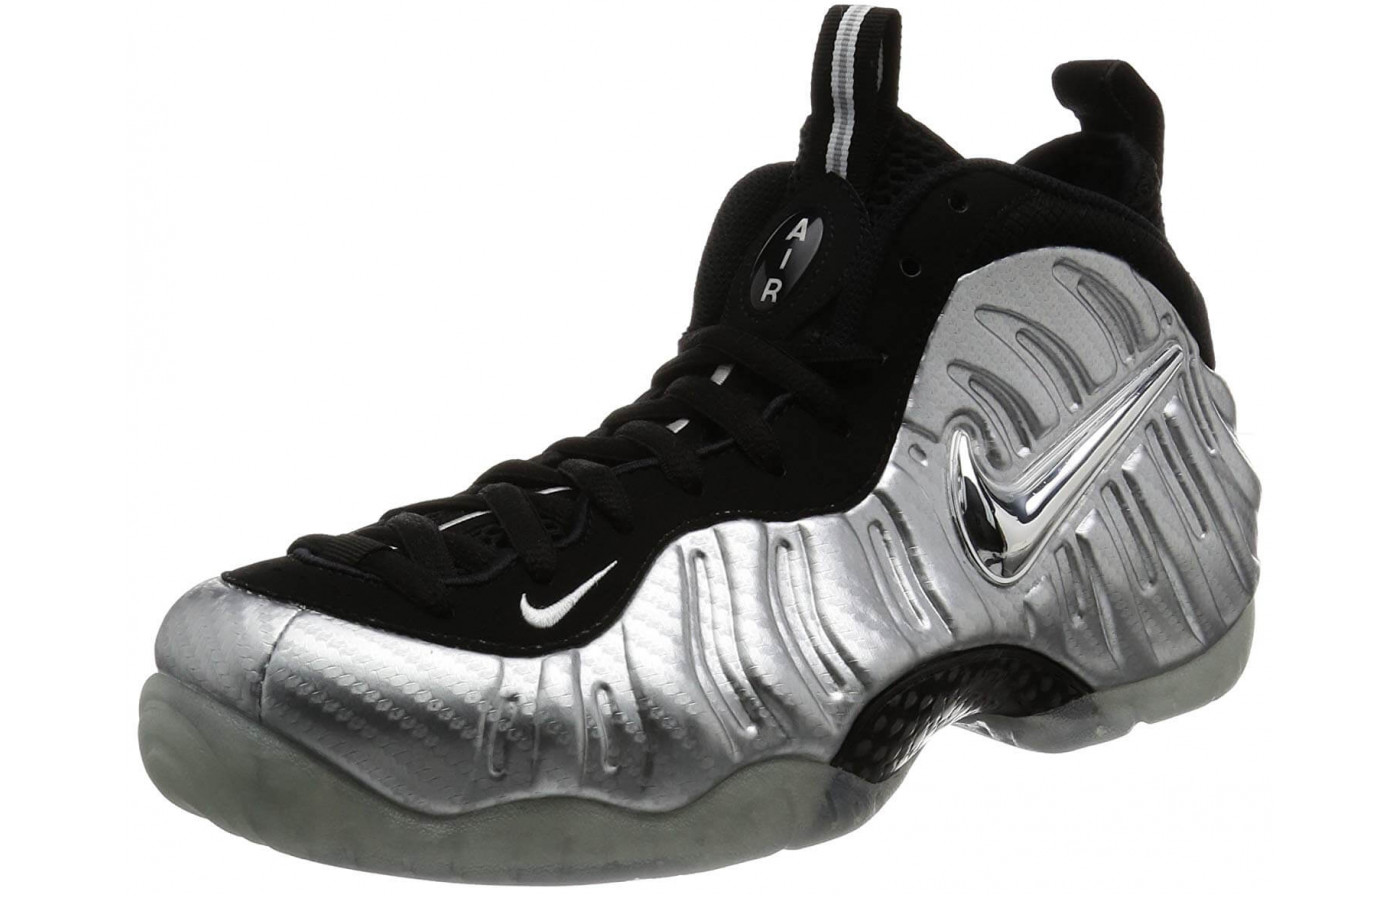 1b3ac4a7743 Nike Air Foamposite Pro - To Buy or Not in May 2019